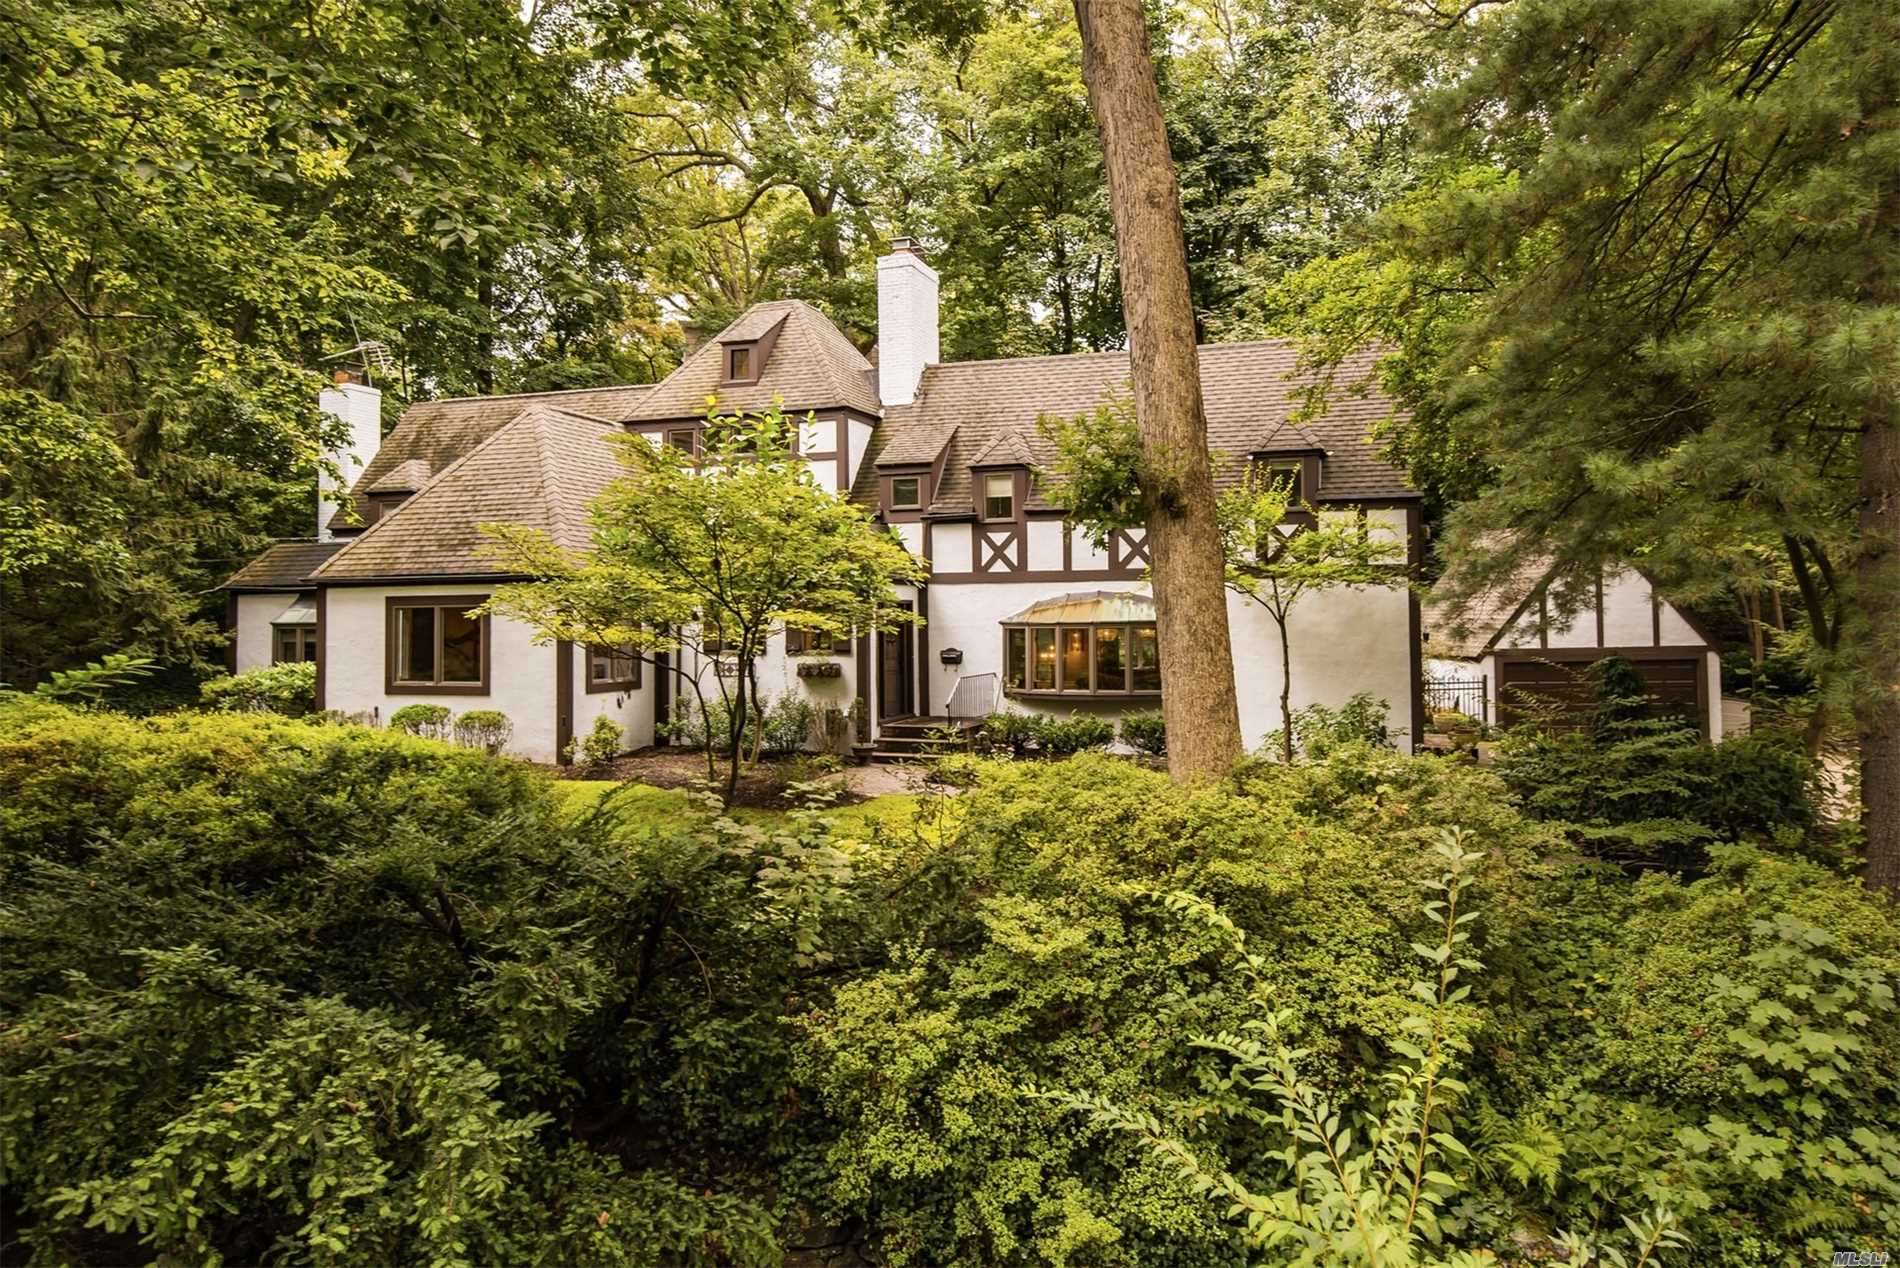 Beautifully Renovated French Normandy Tudor W/3 Brs 2.5 Bths On A Brook In Baxter Estates. This Pristine Home Offers Charm Galore Boasting A Stepdown Lr W/Fp & French Doors To Garden. Magnificent Fdr Overlooks Lush, Landscaped 1/3-Acre. Custom Built-Ins, Fpl & Beamed Ceiling In Great Room & Custom Eik W/Marble Counters, And Radiant Heated Floors. Mbr Suite W/Sitting Area & Master Bath W/Radiant Heated Floors, 2 Brs Full Bth. 2-Car Garage. Near Town & Lirr.